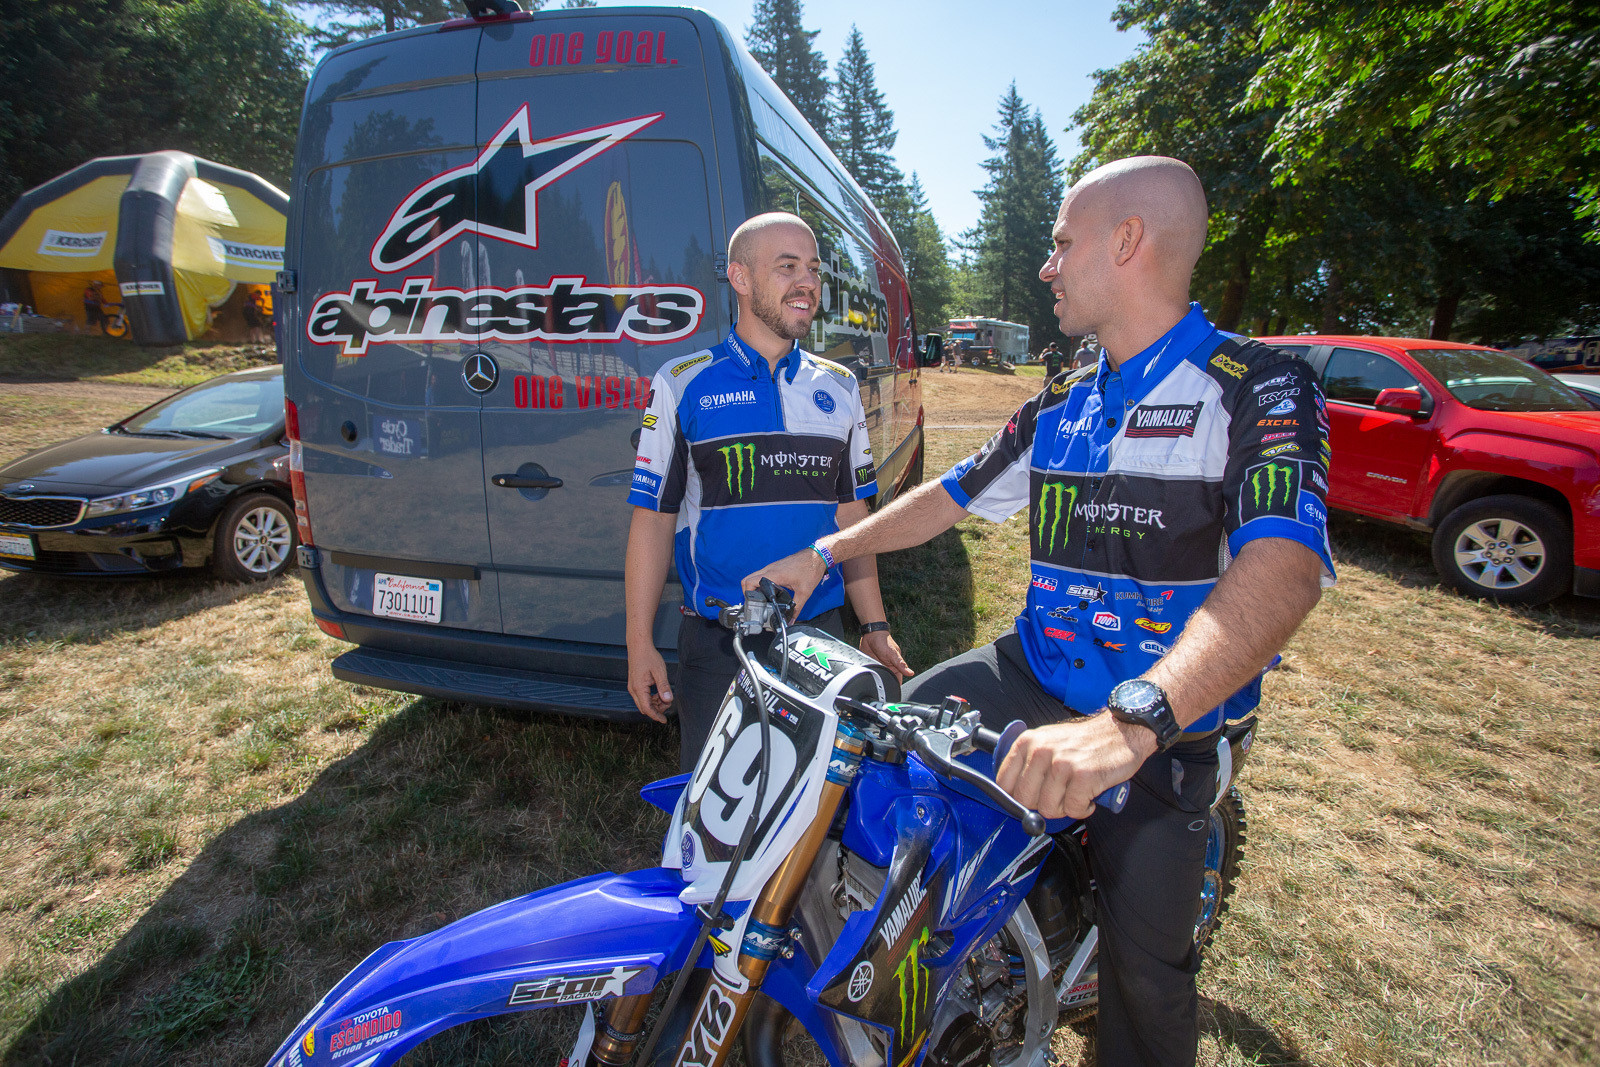 Eric Gass (left) was in the area, and made a guest wrenching appearance for Wil Hahn during the two-stroke race. That's Cooper Webb's current mechanic, Grant Hutcheson on the left.